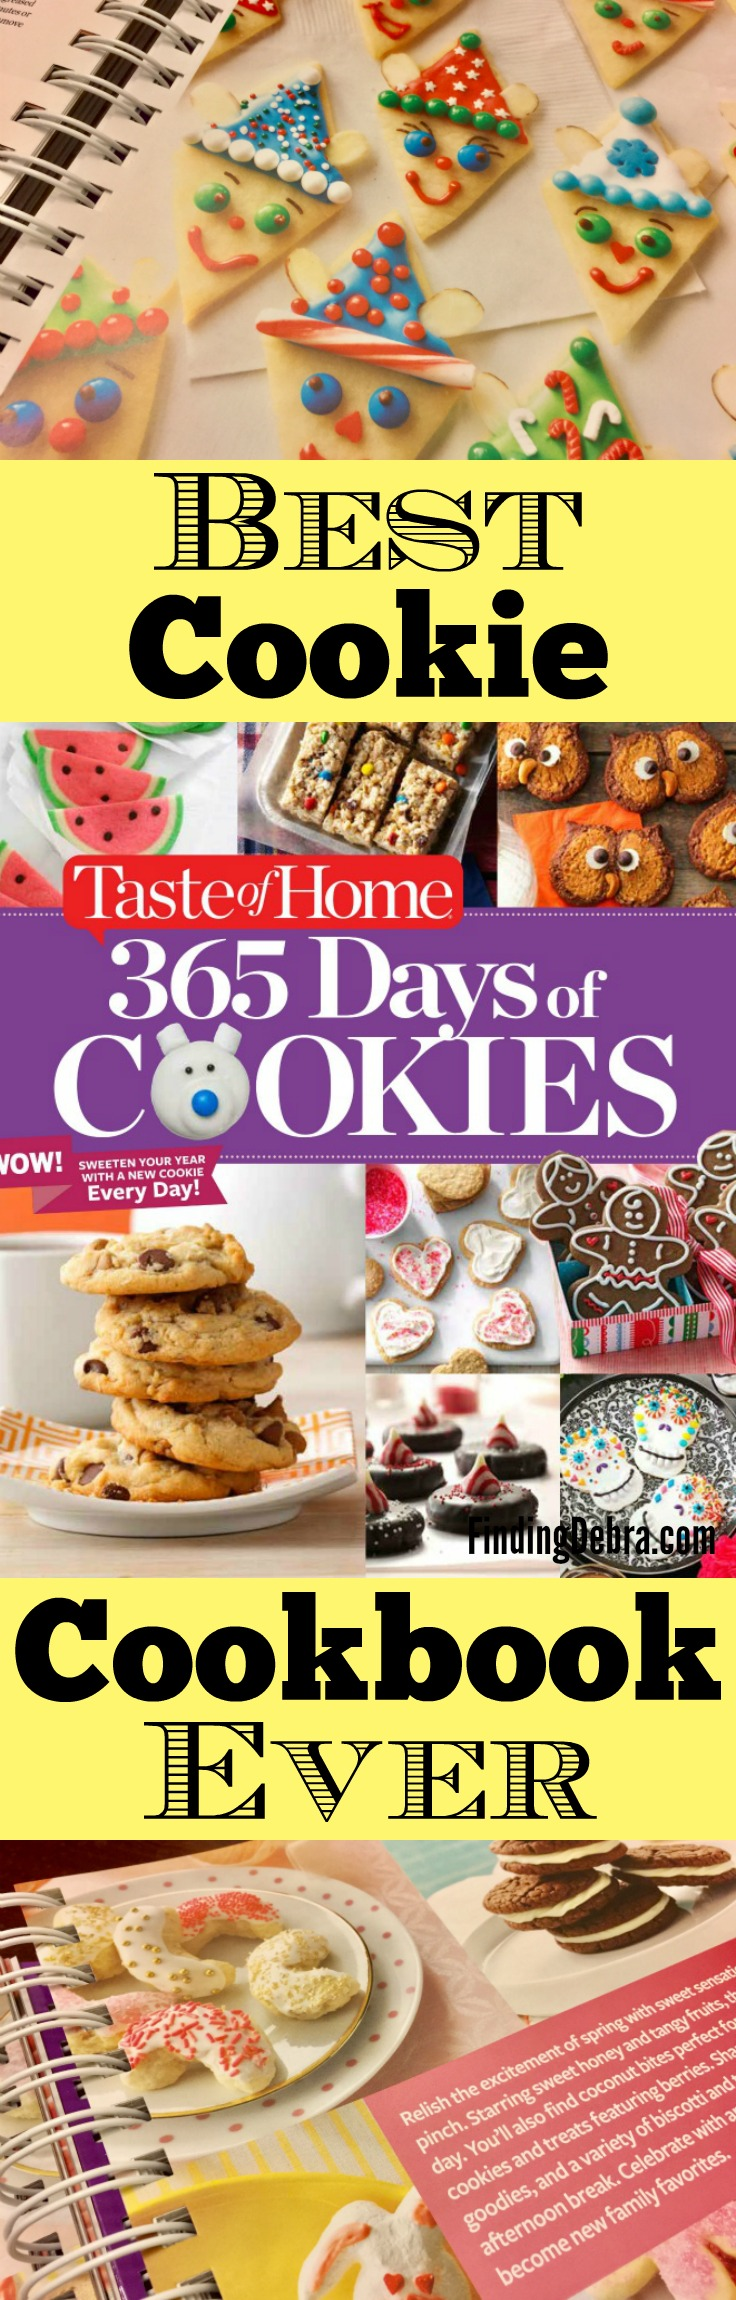 Best Cookie Cookbook Ever - Taste of Home - 365 Days of Cookies. I'm giving a copy away on the blog too!